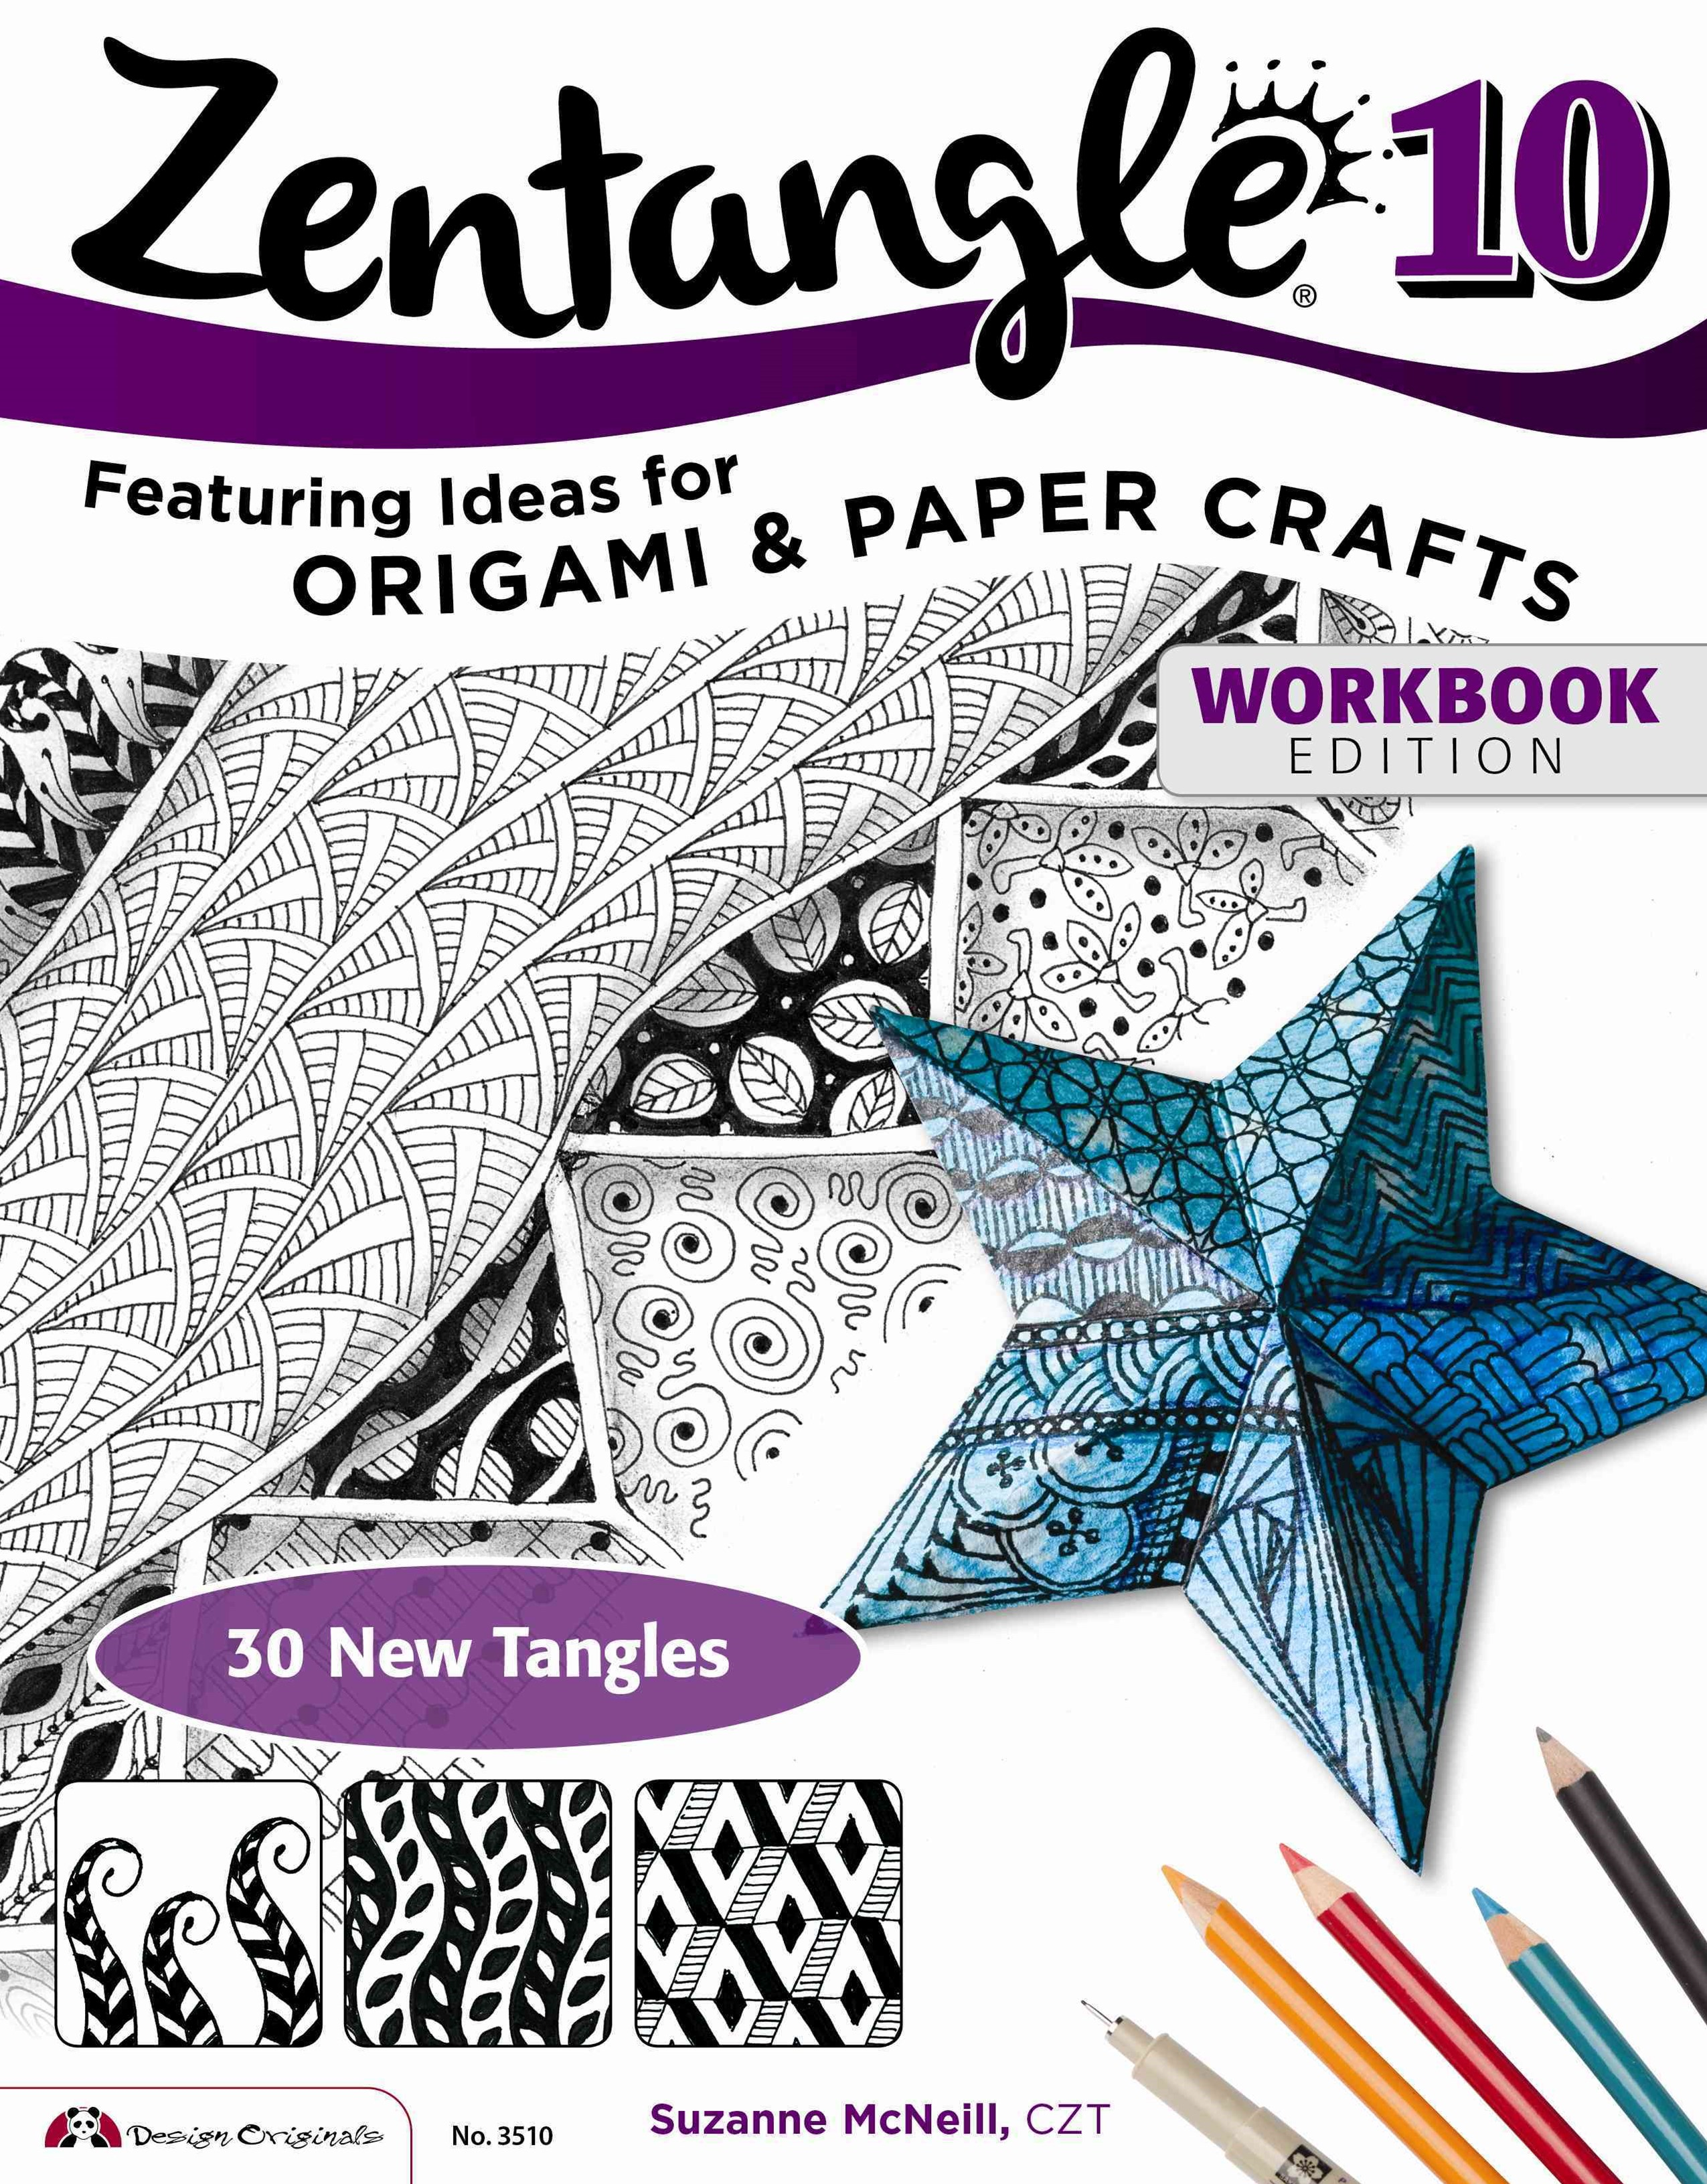 Zentangle 10, Workbook Edition